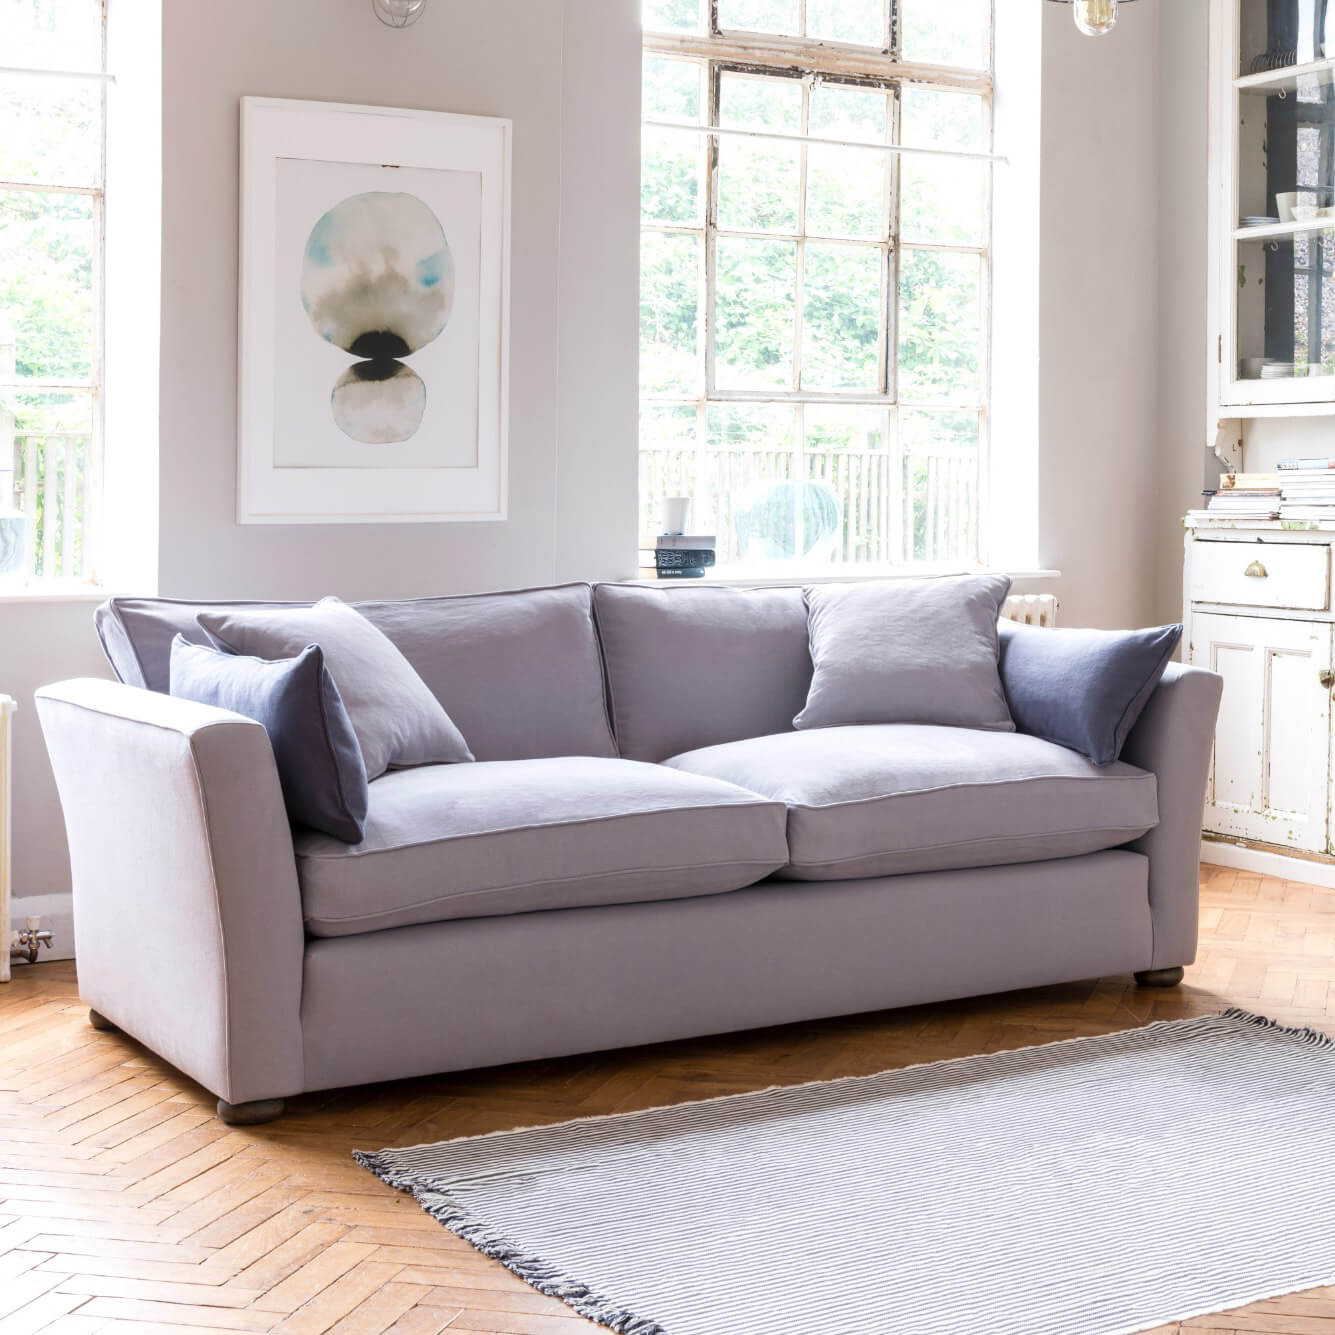 Made To Measure Sofas Manchester Large 3 Seater Sofa Aldeburgh Sofa